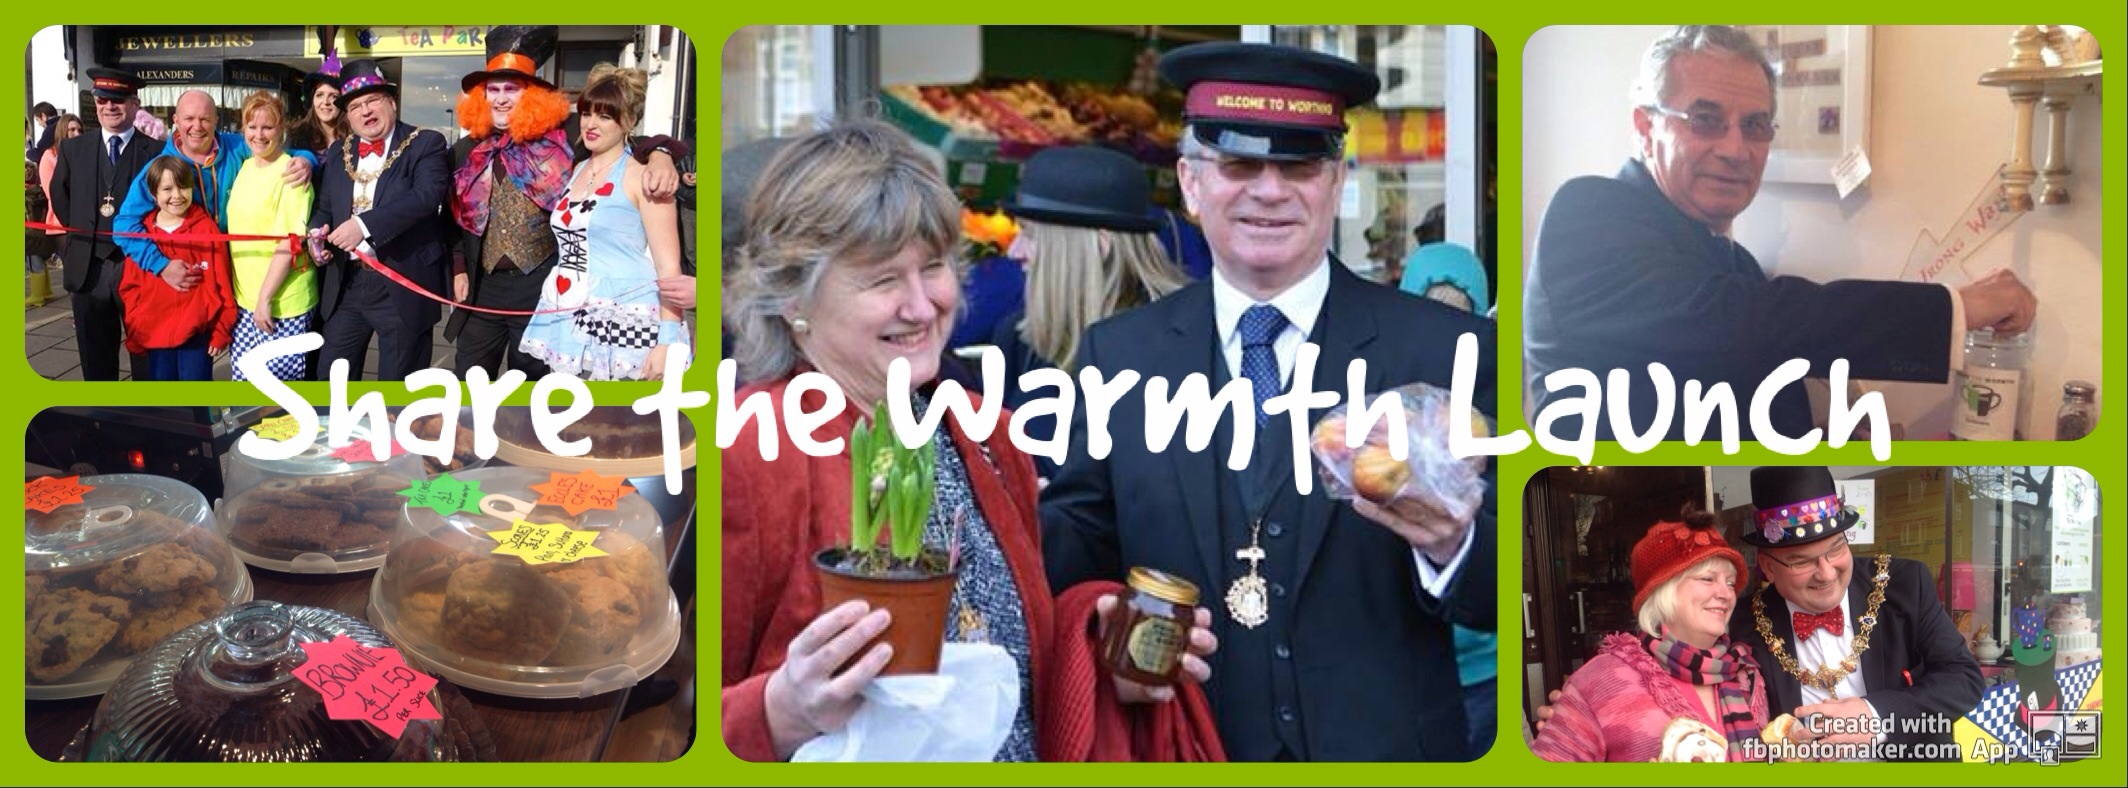 Share the warmth launches in Worthing